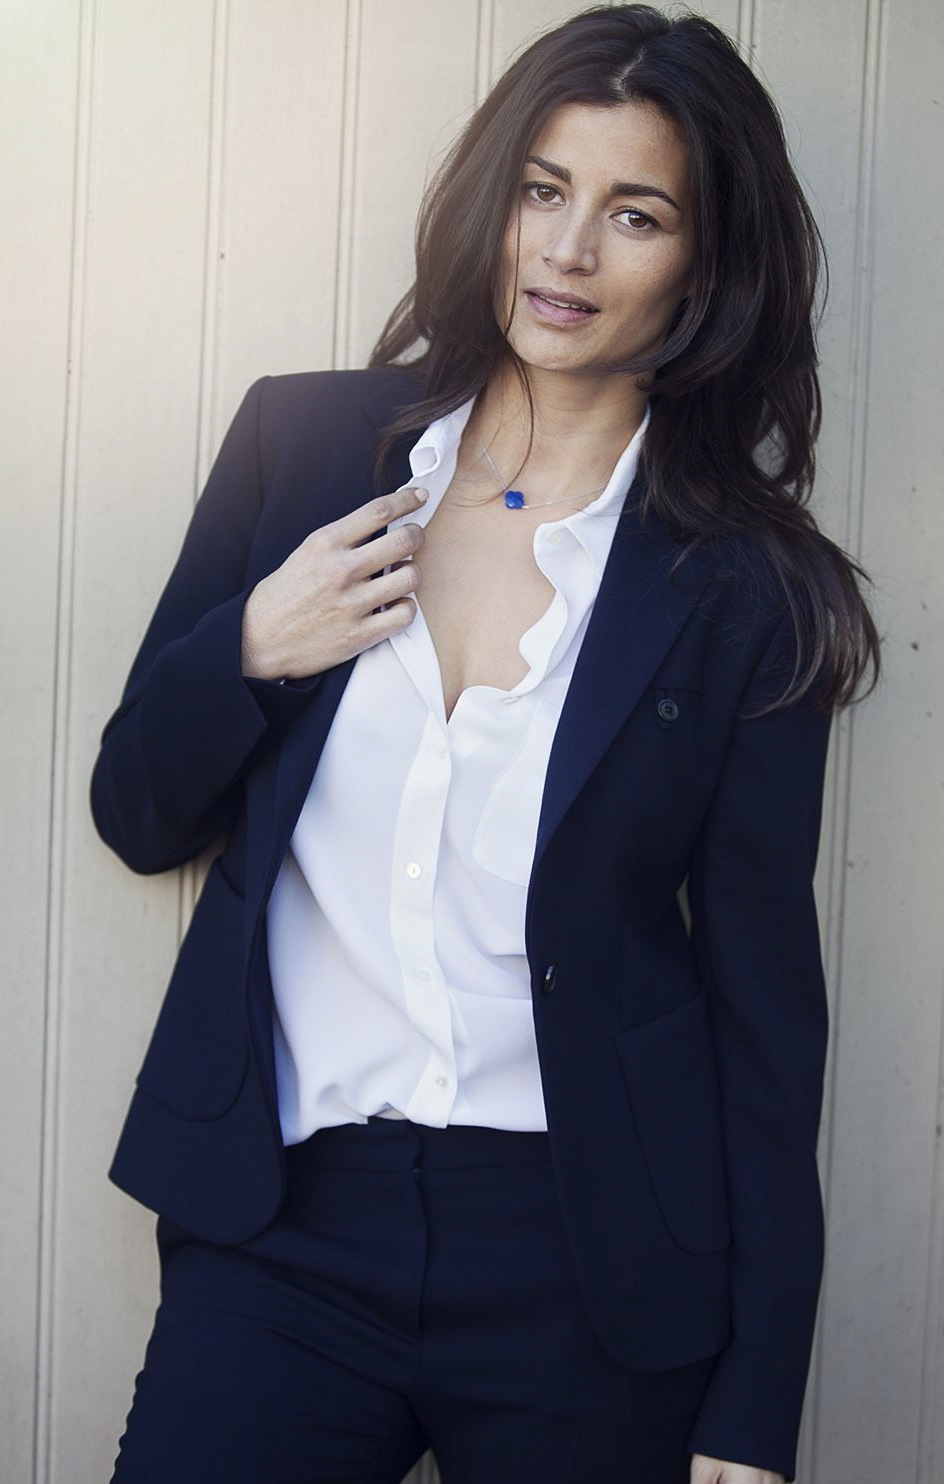 streetstyle look BlogForShops navy suit women fall winter 2014